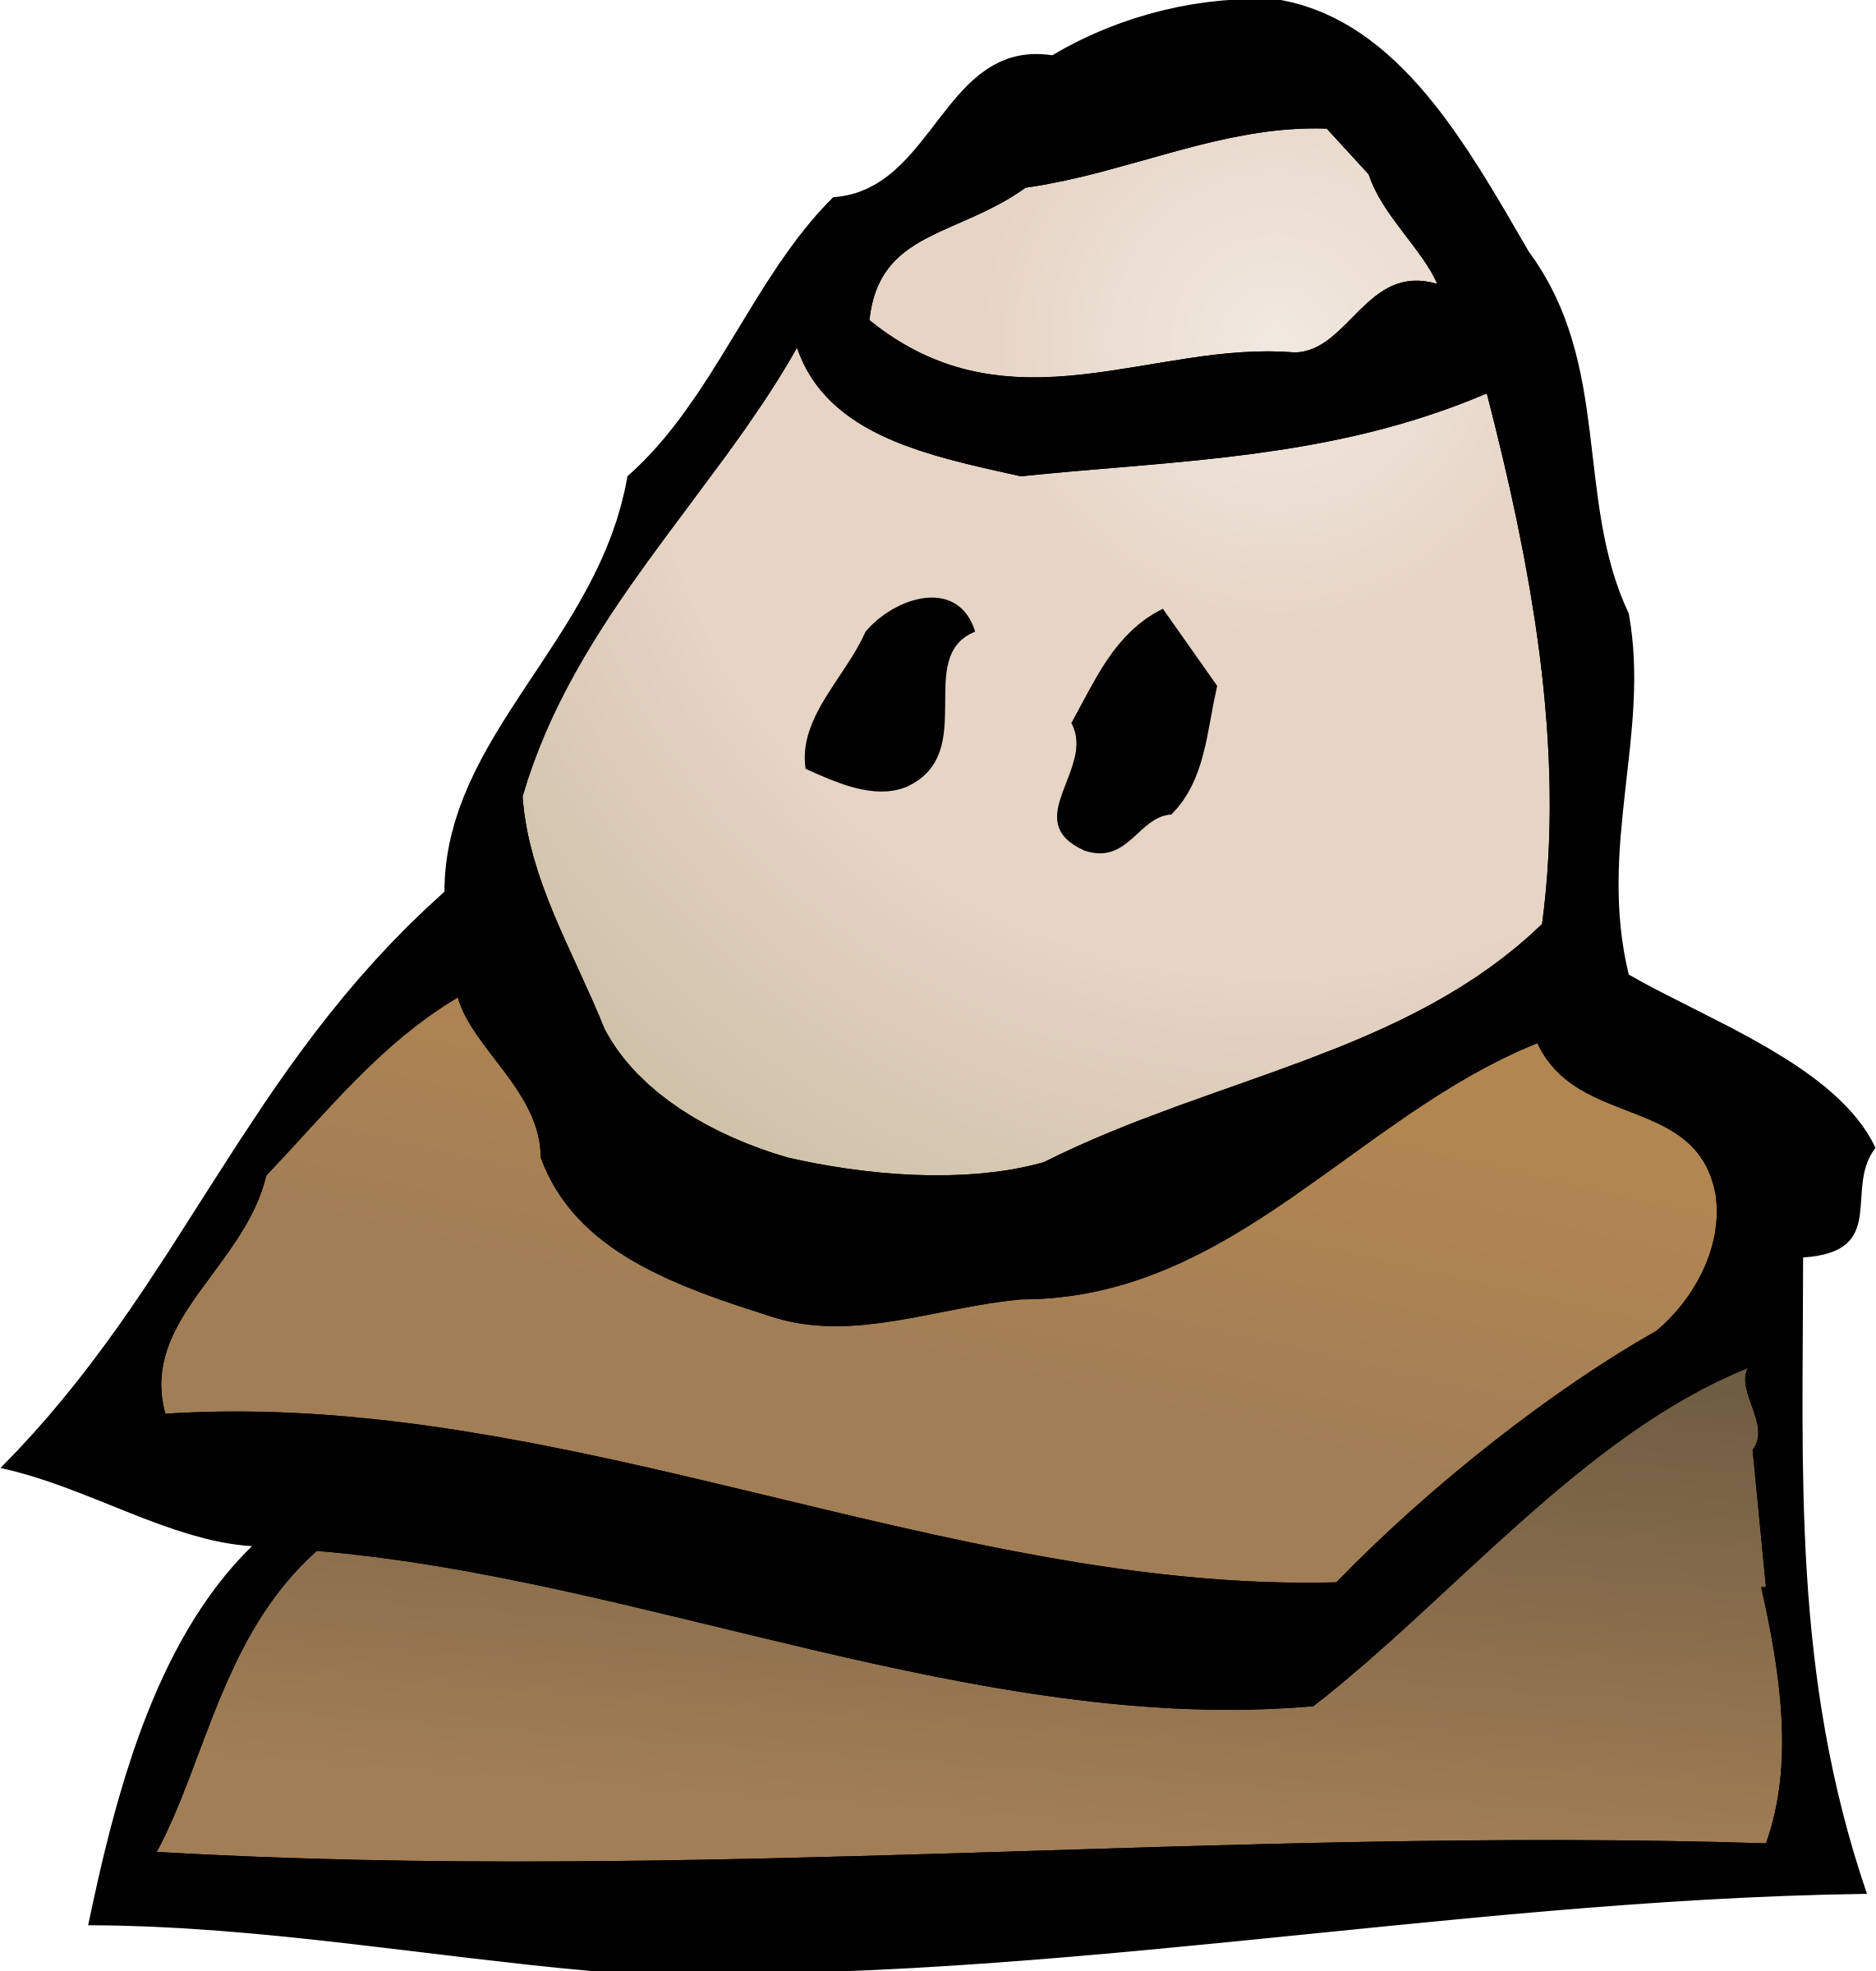 monk icon by Klàro